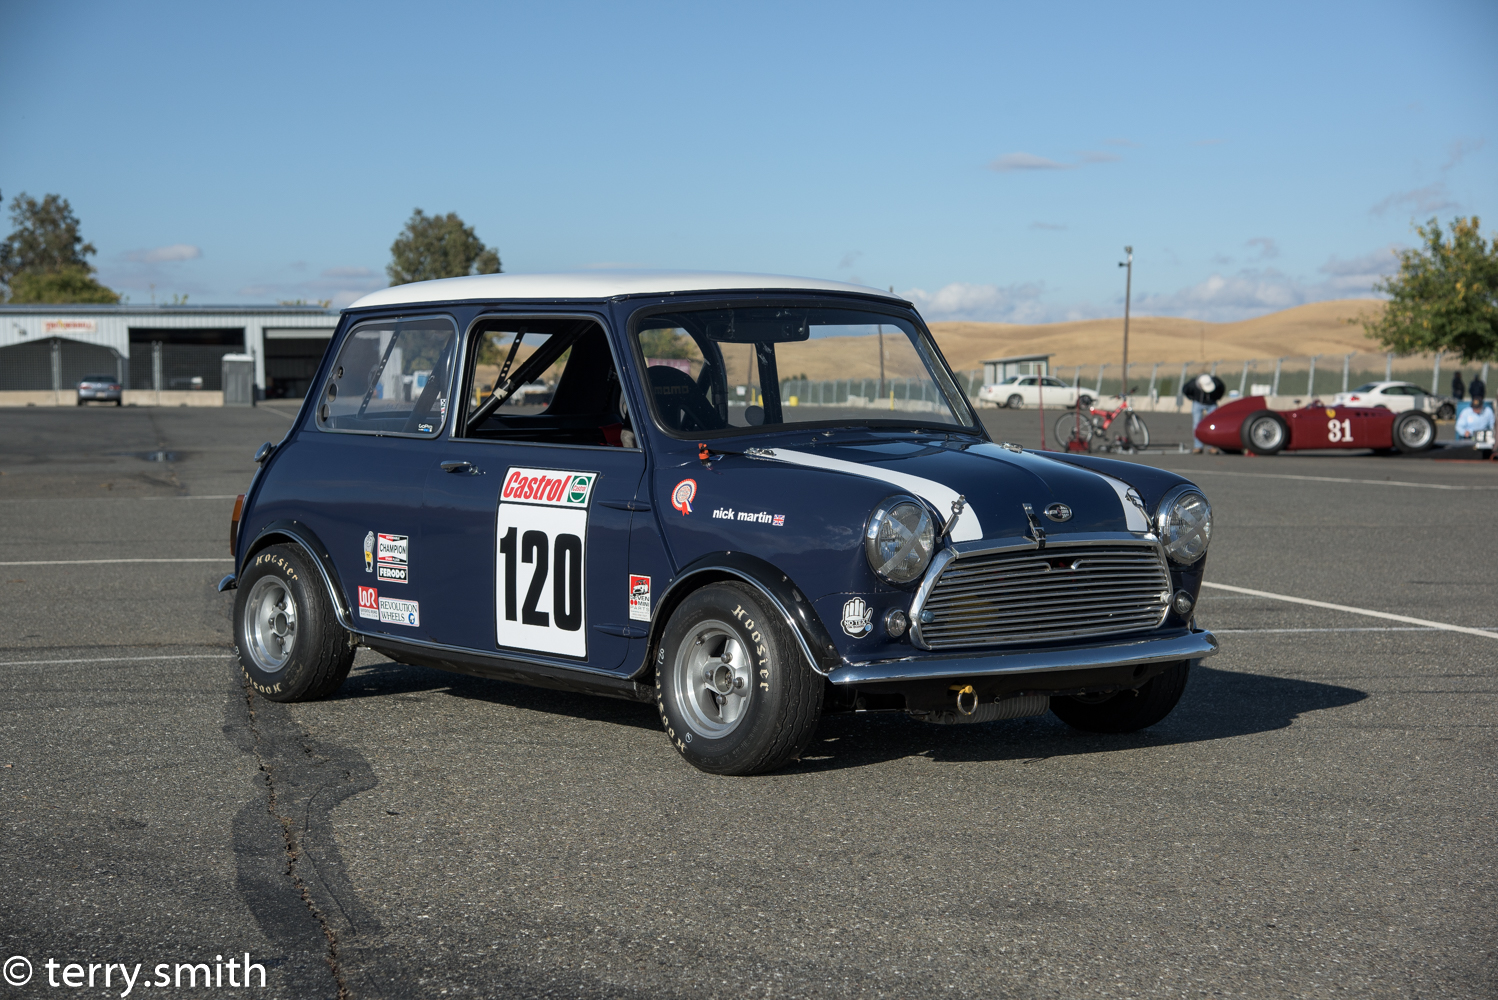 Mini cooper s race car 1967 race car for sale 22320 for Mini motor cars for sale